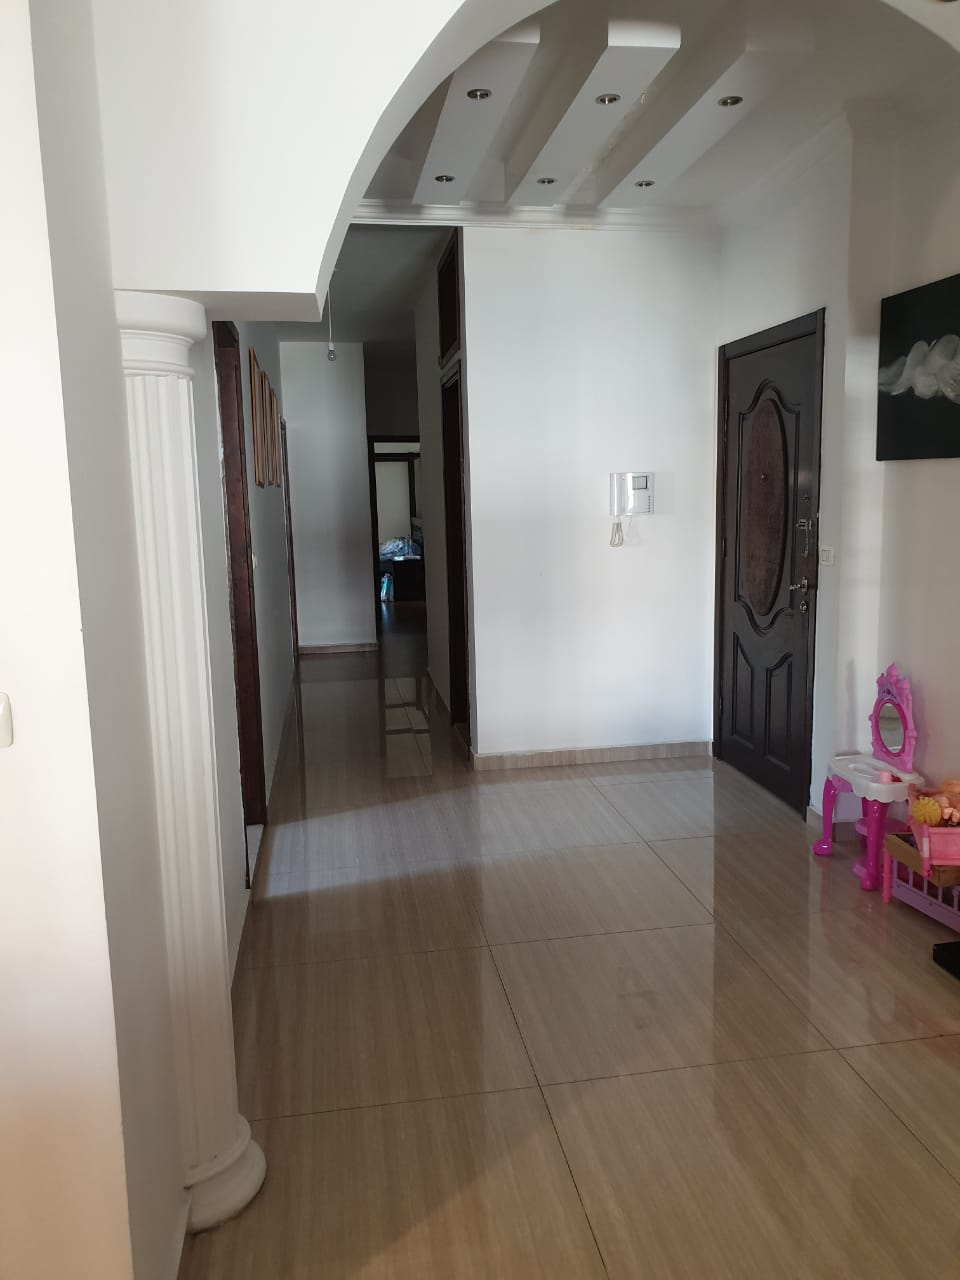 Apartment for sale in Adonis, real estate in Adonis, buy sell properties in Adonis